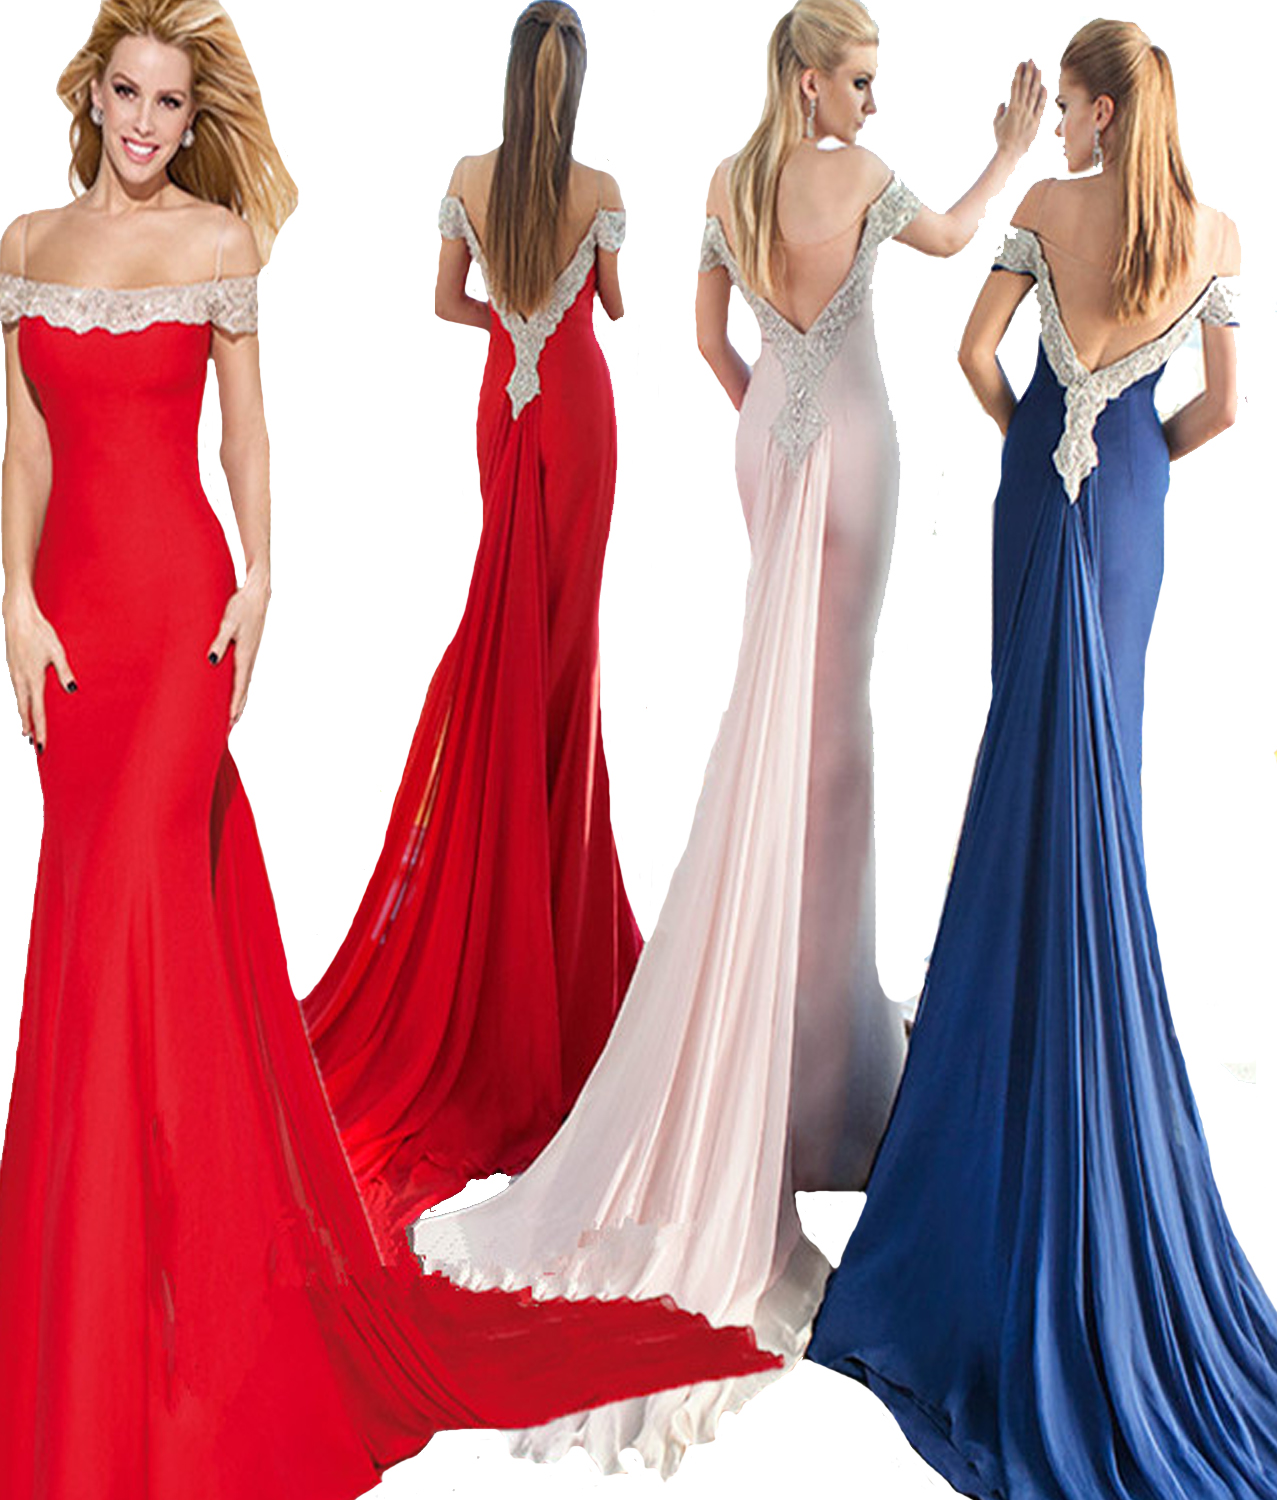 Particular Sexy Spaghetti Straps Cap Sleeve Sexy Long Evening Gowns Prom Lady Sexy Spaghetti Straps Cap Sleeve Sexy Long Evening Gowns Prom Prom Dresses 2016 Tumblr Prom Dresses 2016 Short wedding dress Prom Dresses 2016